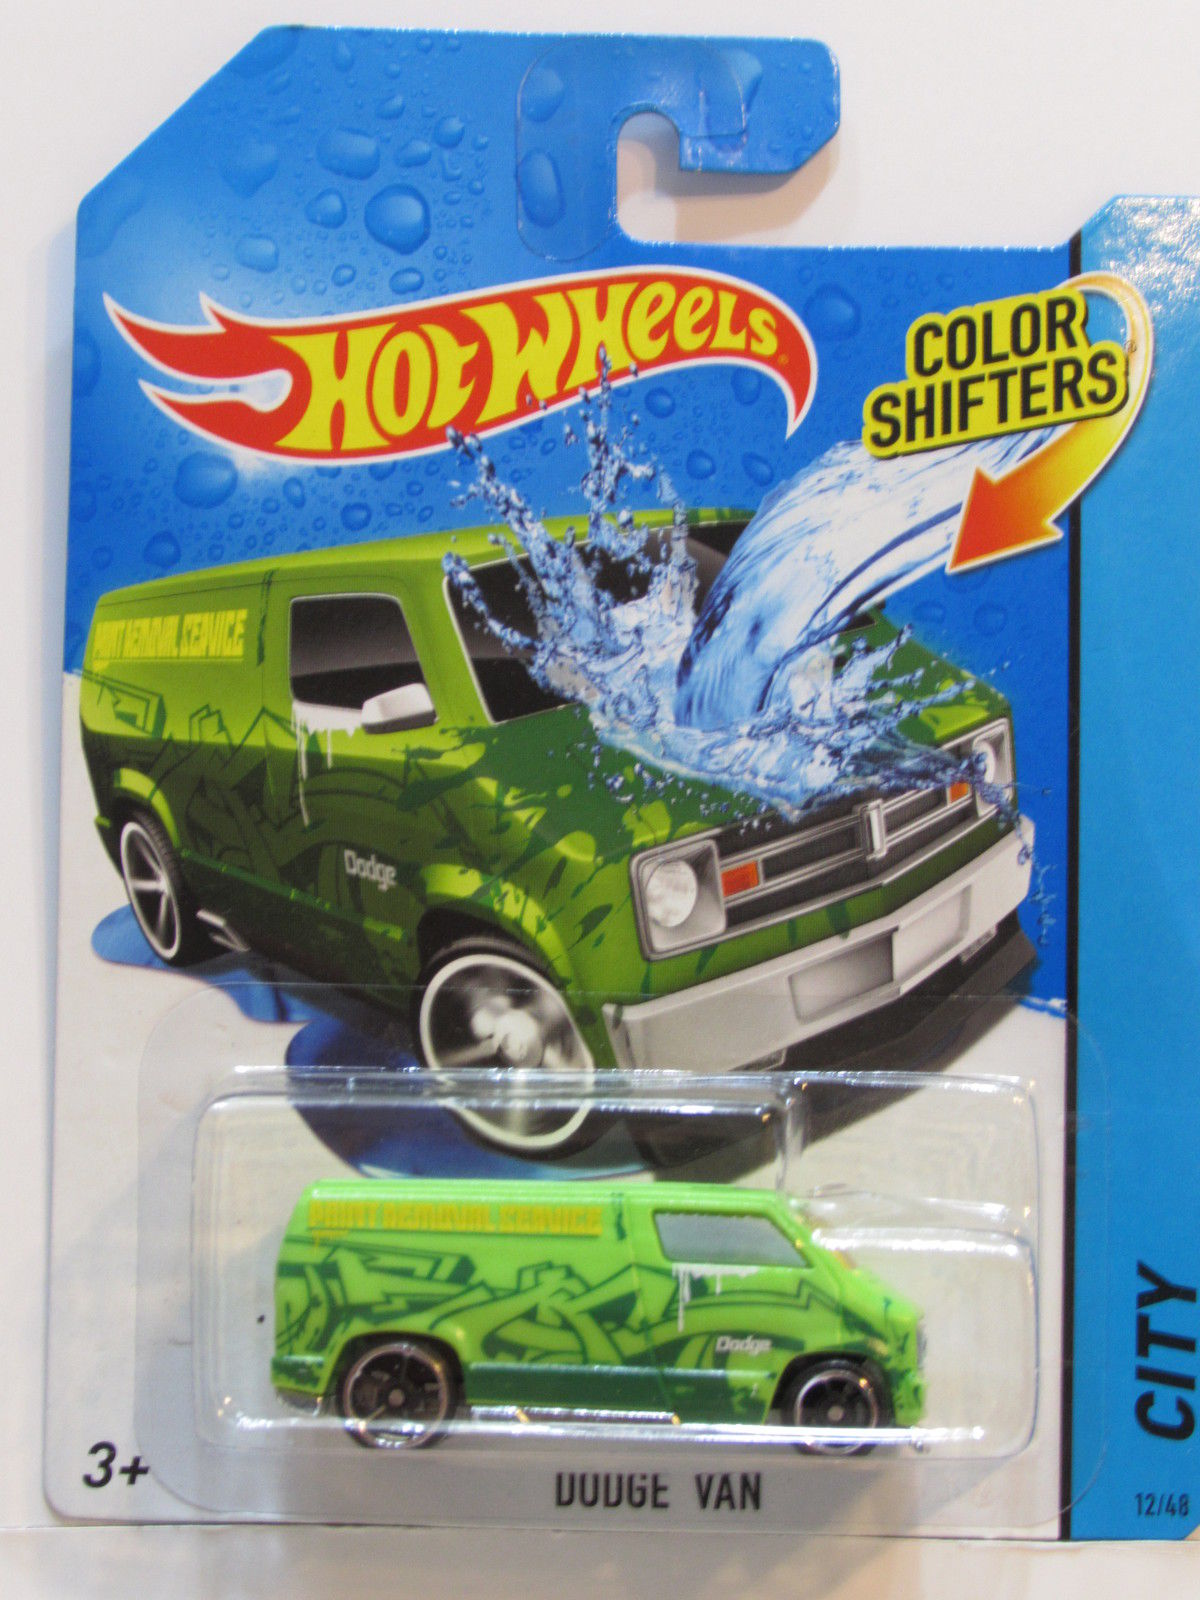 HOT WHEELS CITY COLOR SHIFTERS - CITY DODGE VAN